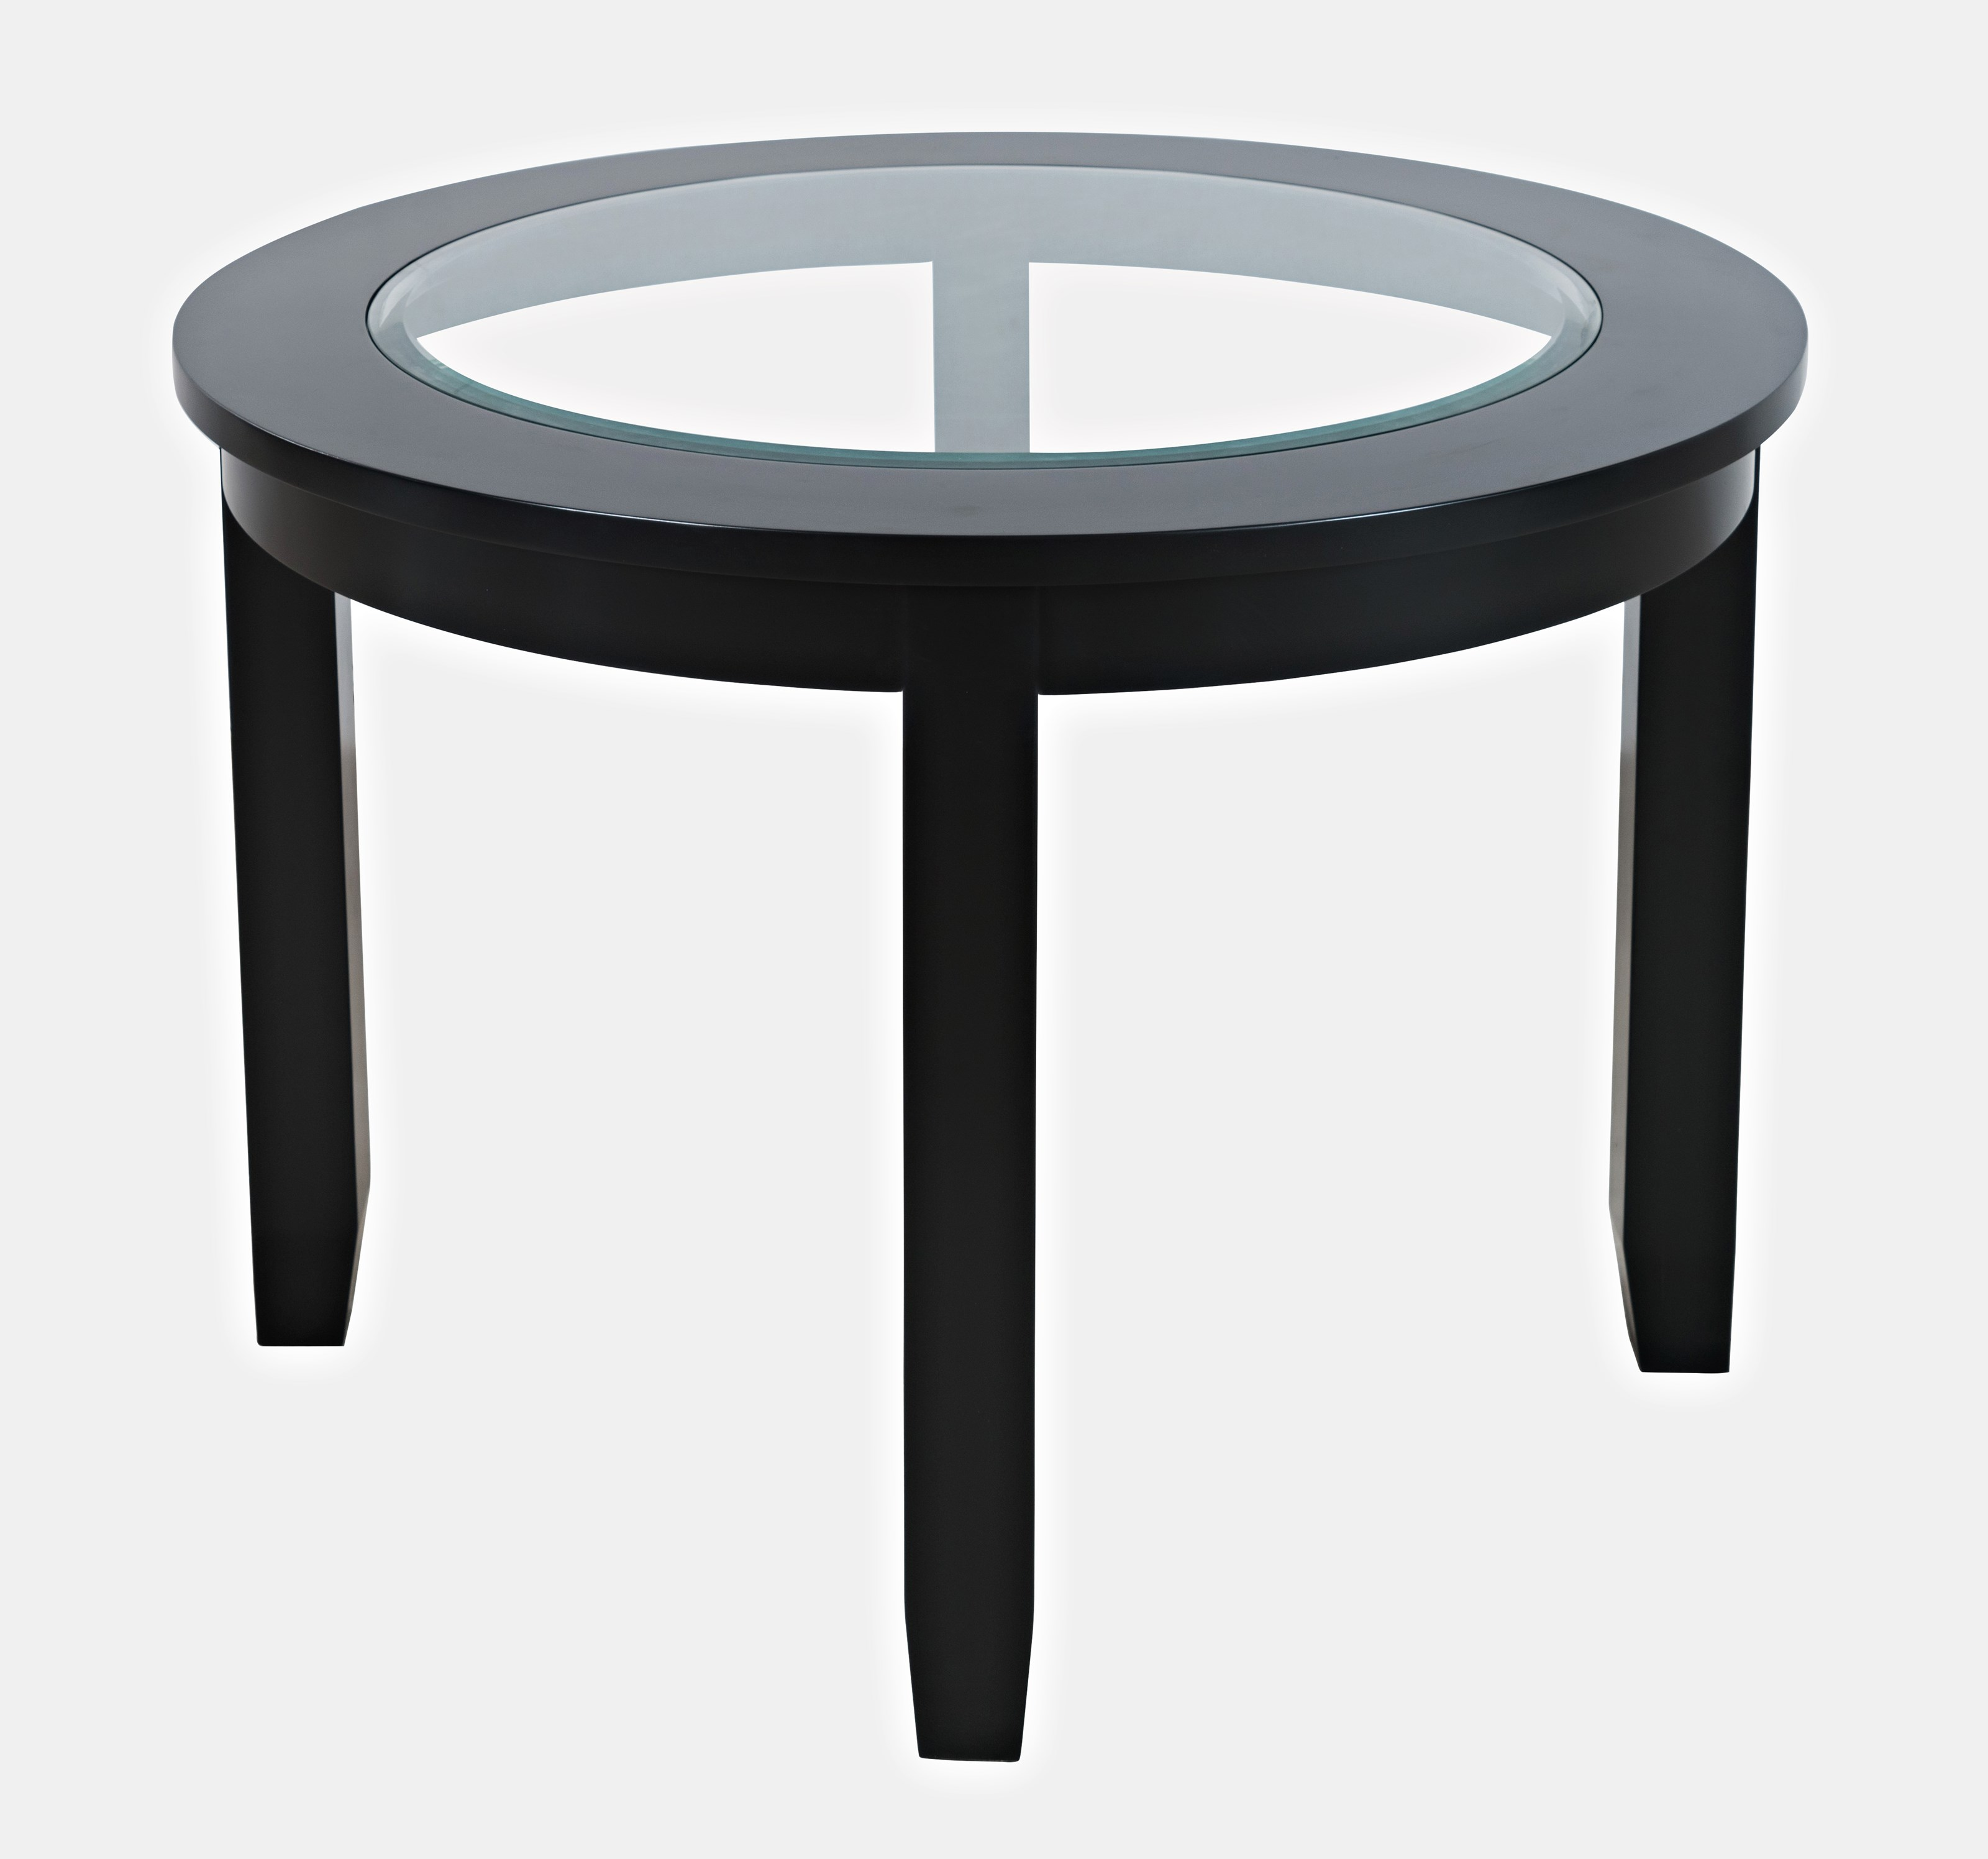 "Urban Icon 42"" Round Dining Table by Jofran at Jofran"